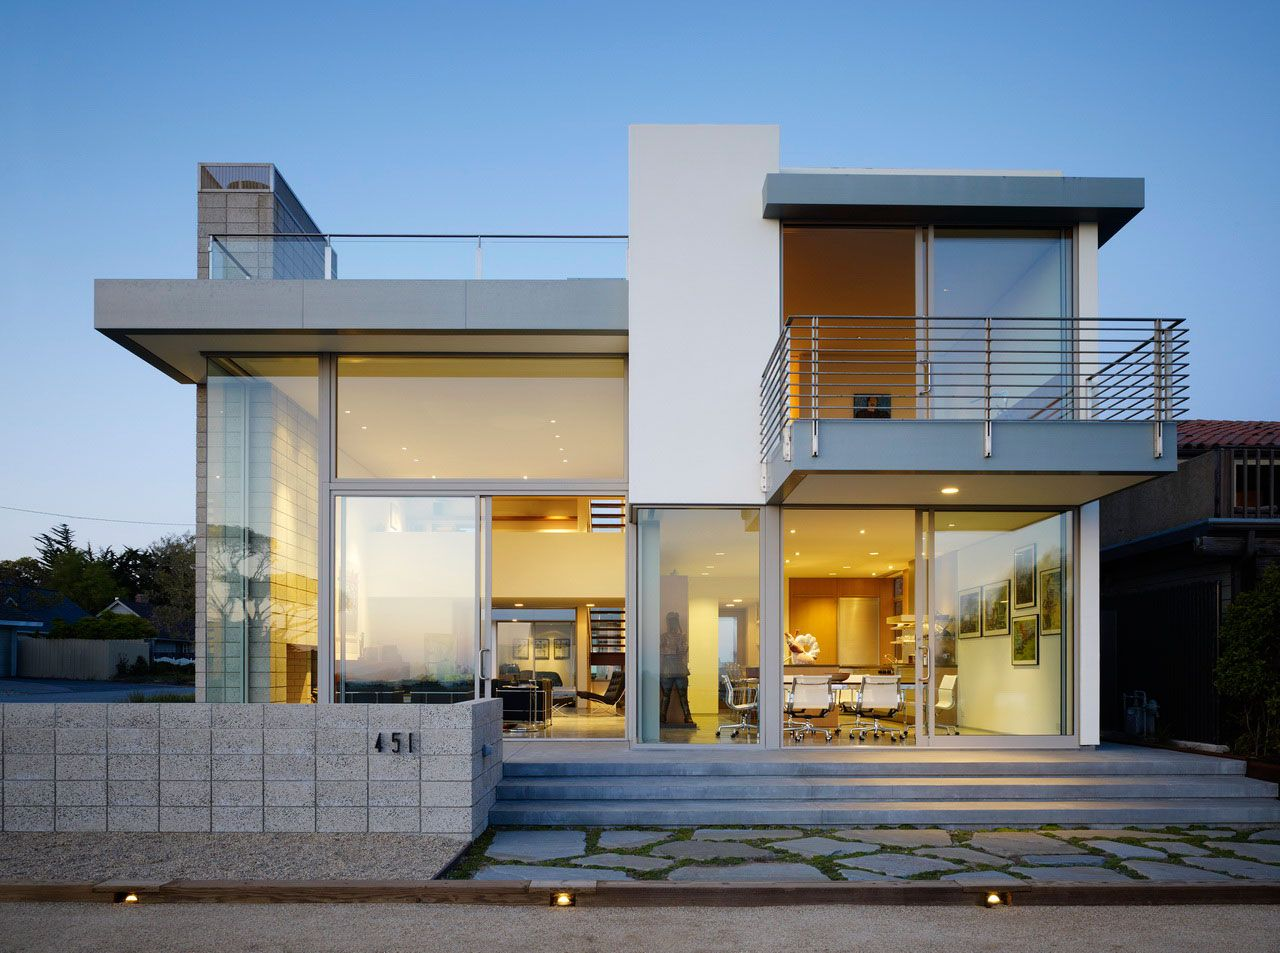 Best Images About Small Modern Homes On Pinterest Small - Best small home designs